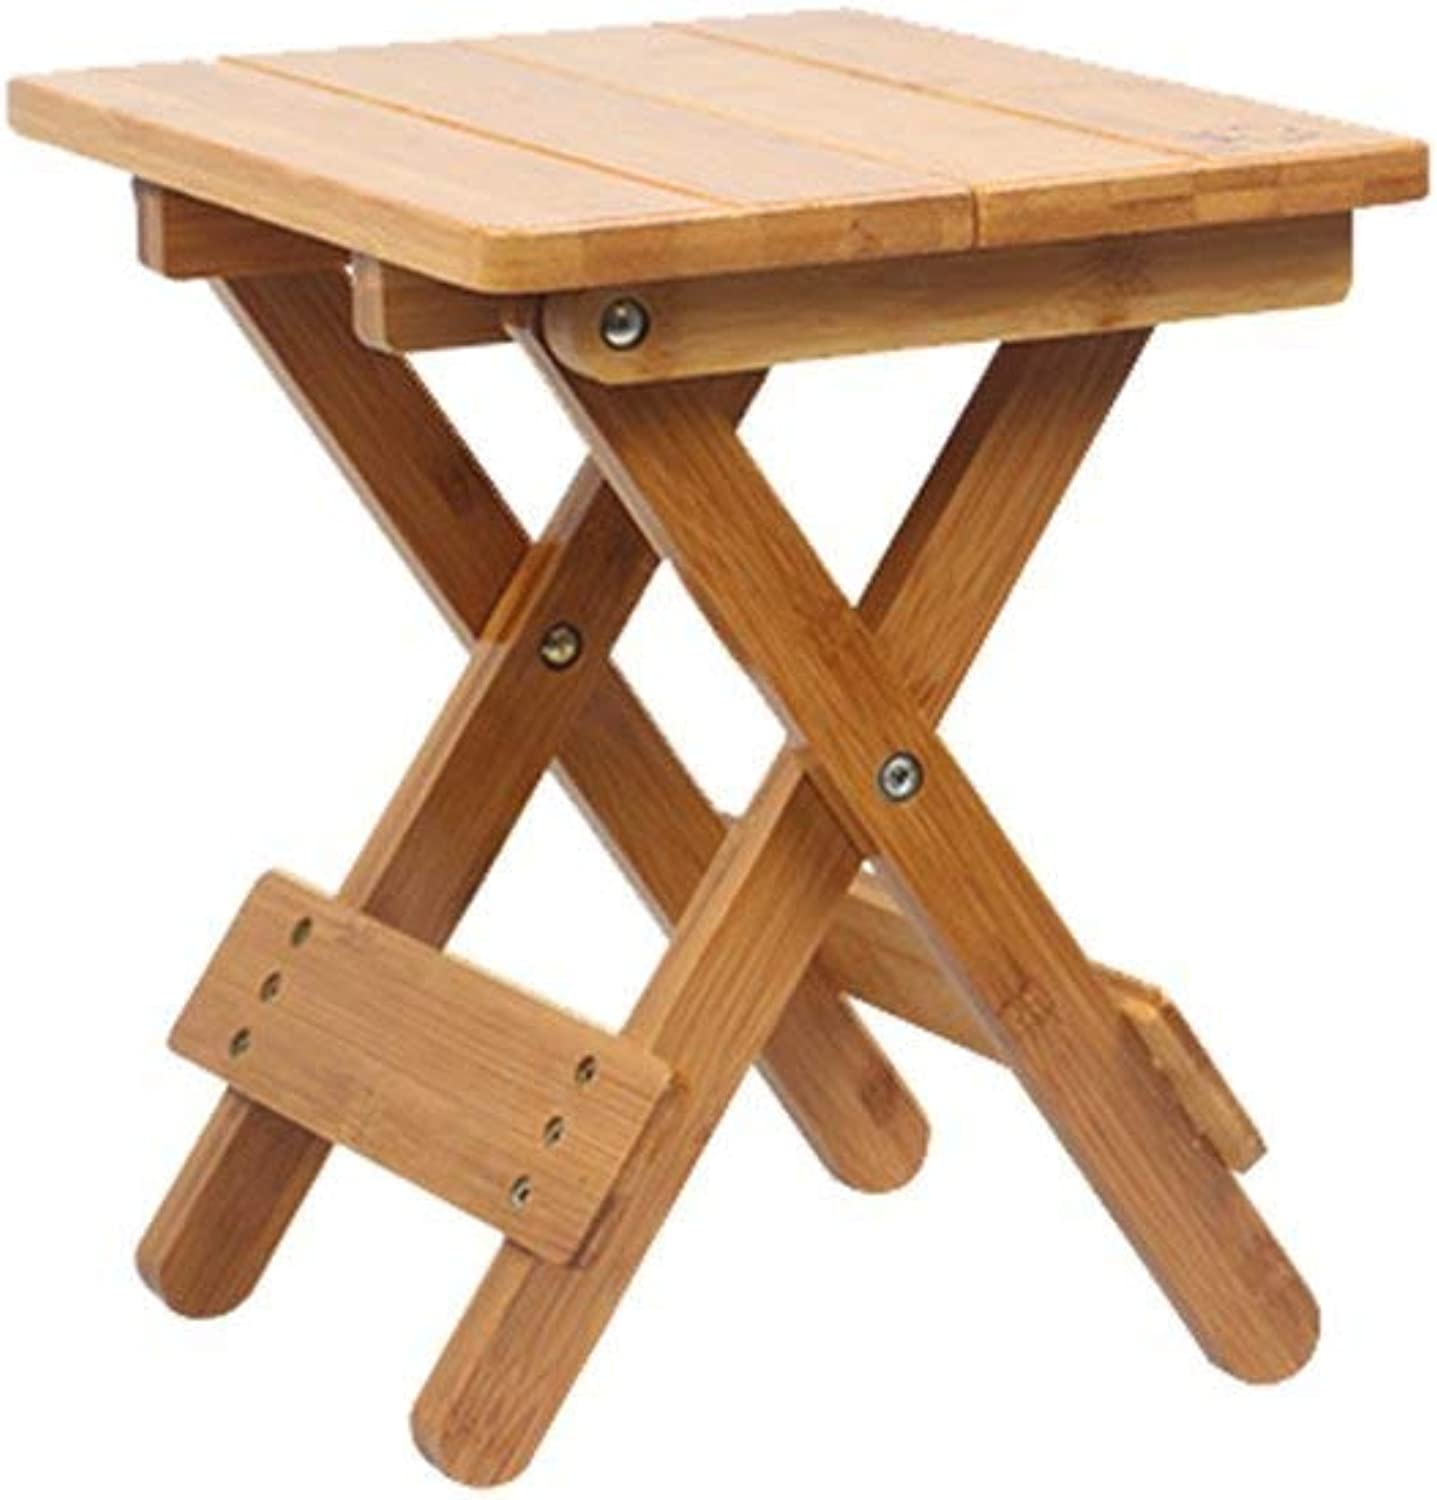 Monfs HOME Bamboo Folding Stool Portable Household Wooden Stool Outdoor Leisure Stool Fishing Stool Comfortable decoration (Size   23  21.7  29cm) (Size   23  21.7  29cm)